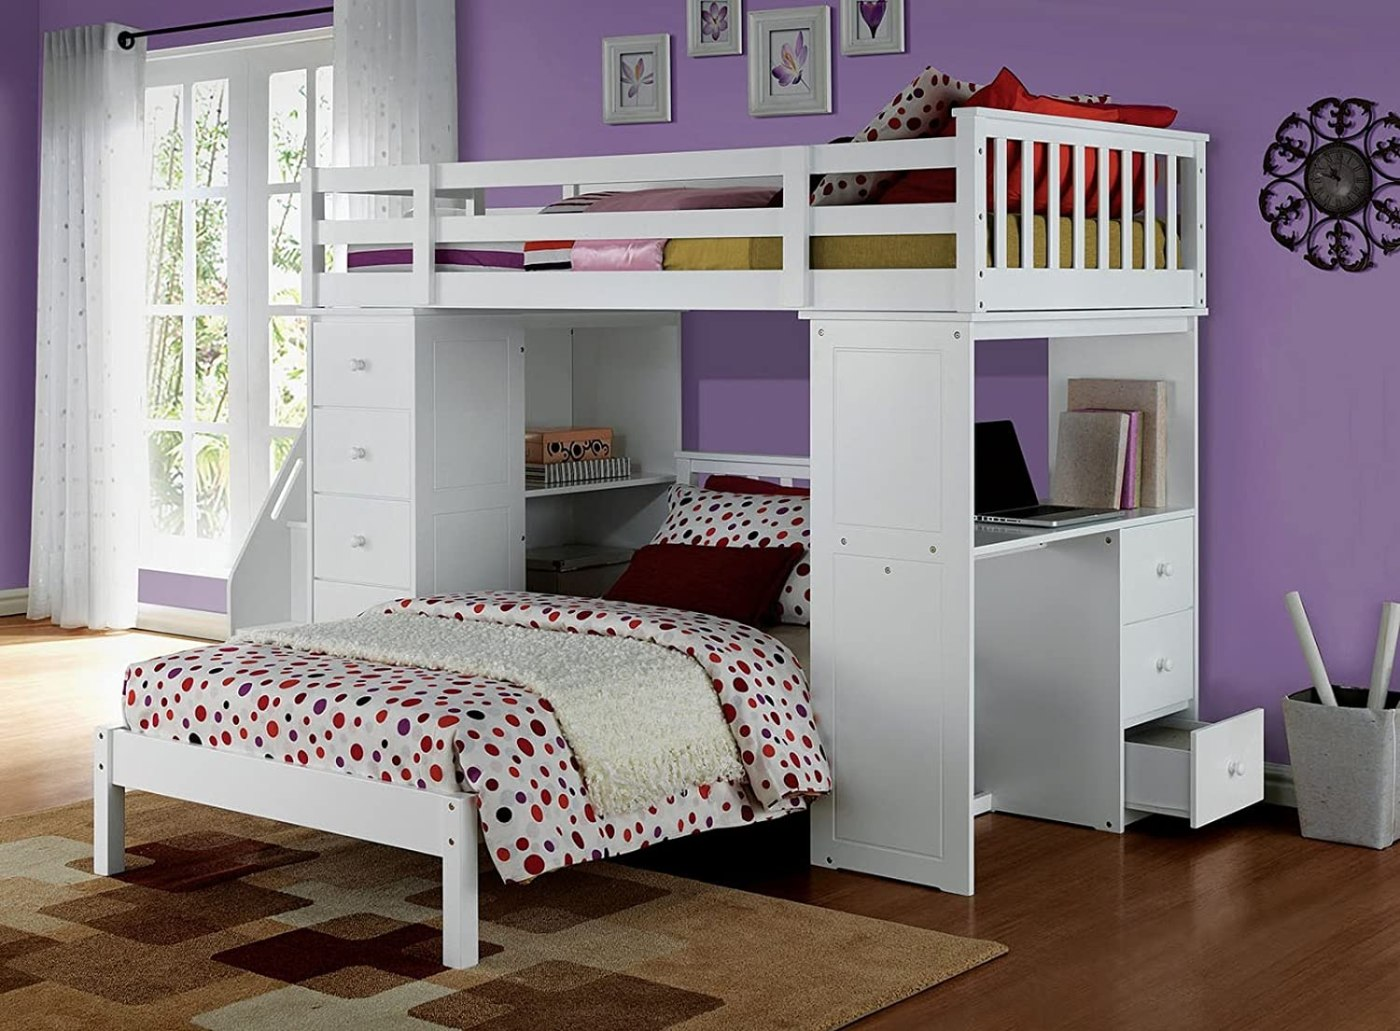 Acme Freya Loft Bed Set with Twin Bed in White